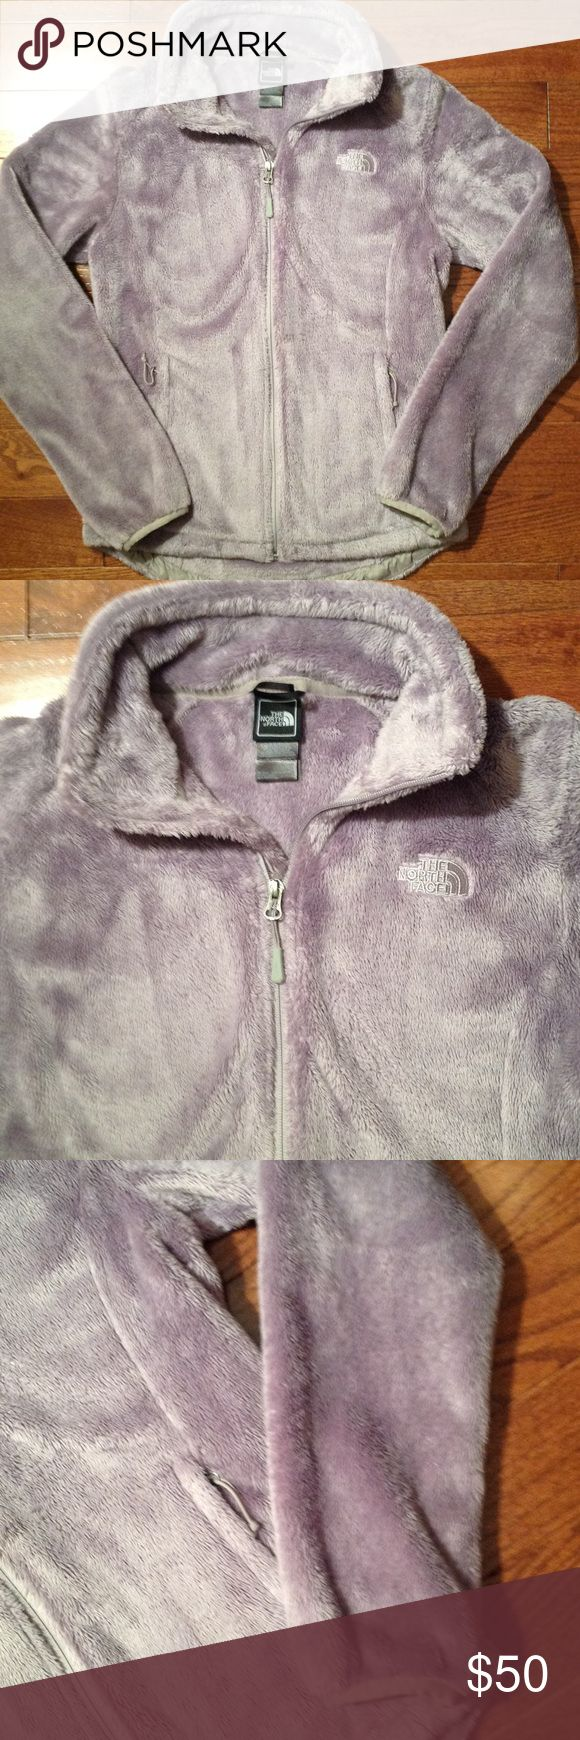 Ladies Fuzzy North Face Jacket EXCELLENT condition 2front exterior zip pockets, 2 interior compartments, 100% polyester, comes from smoke free and pet free home, in EXCELLENT Condition The North Face Jackets & Coats